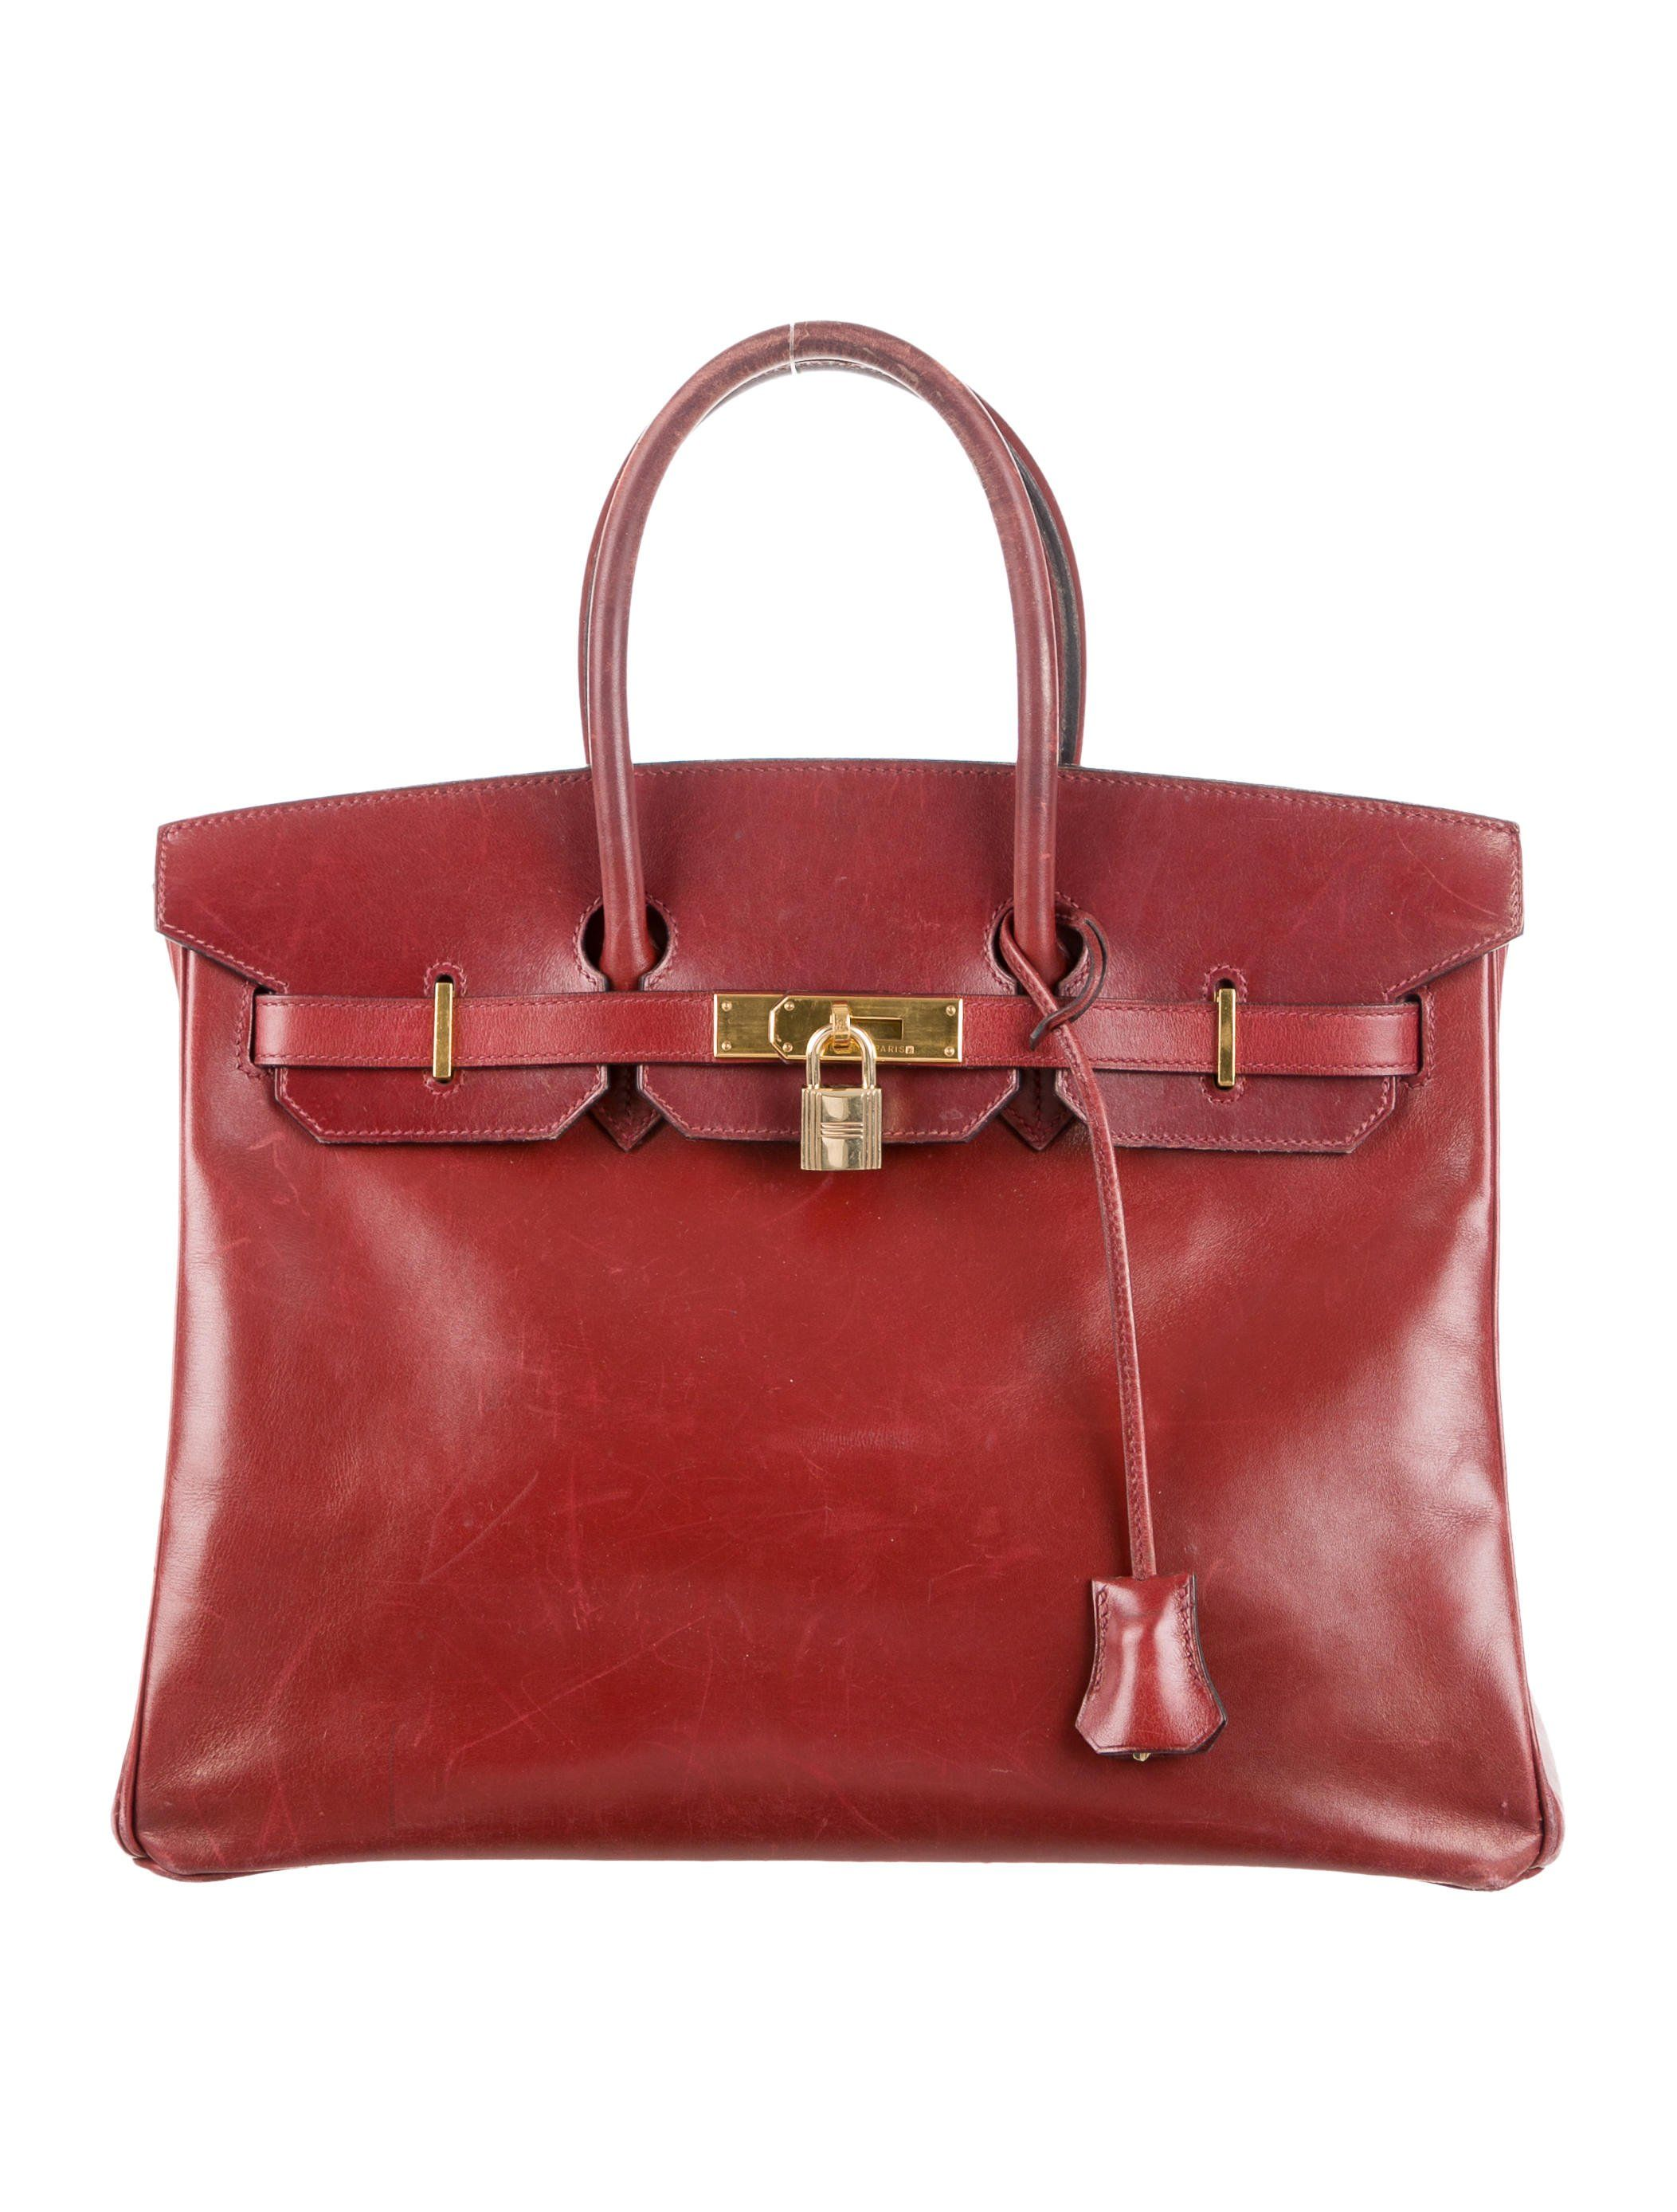 345cde040fba Rouge H Box leather Hermès Birkin 35 with gold-plated hardware